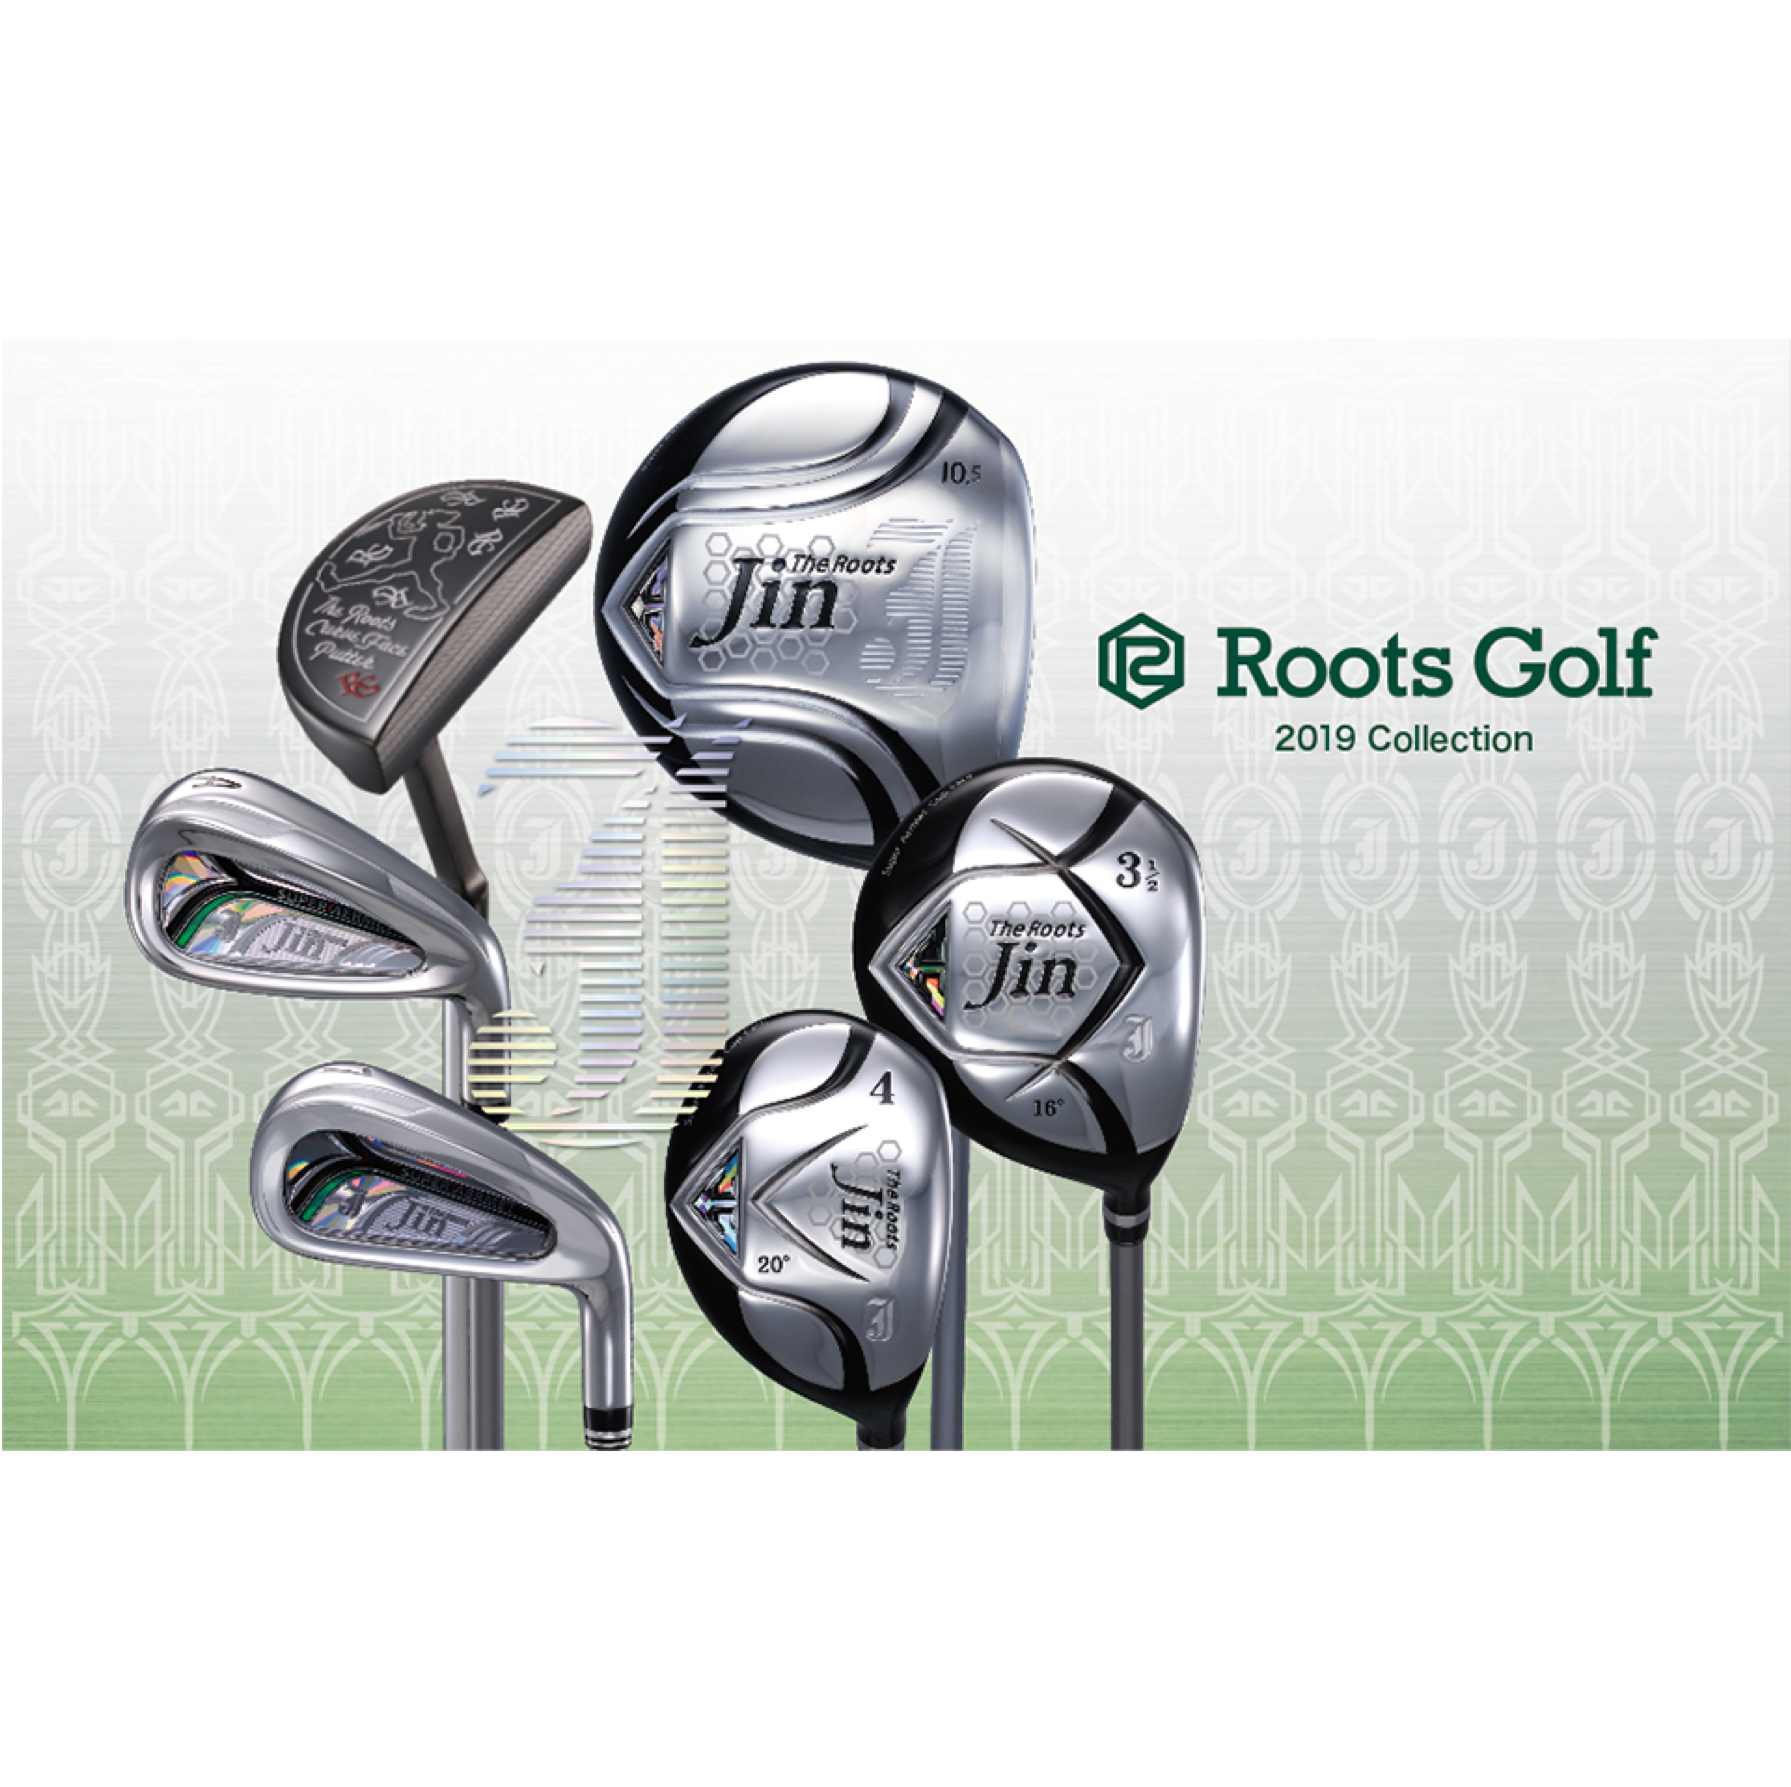 2019 Roots Golfカタログデザイン